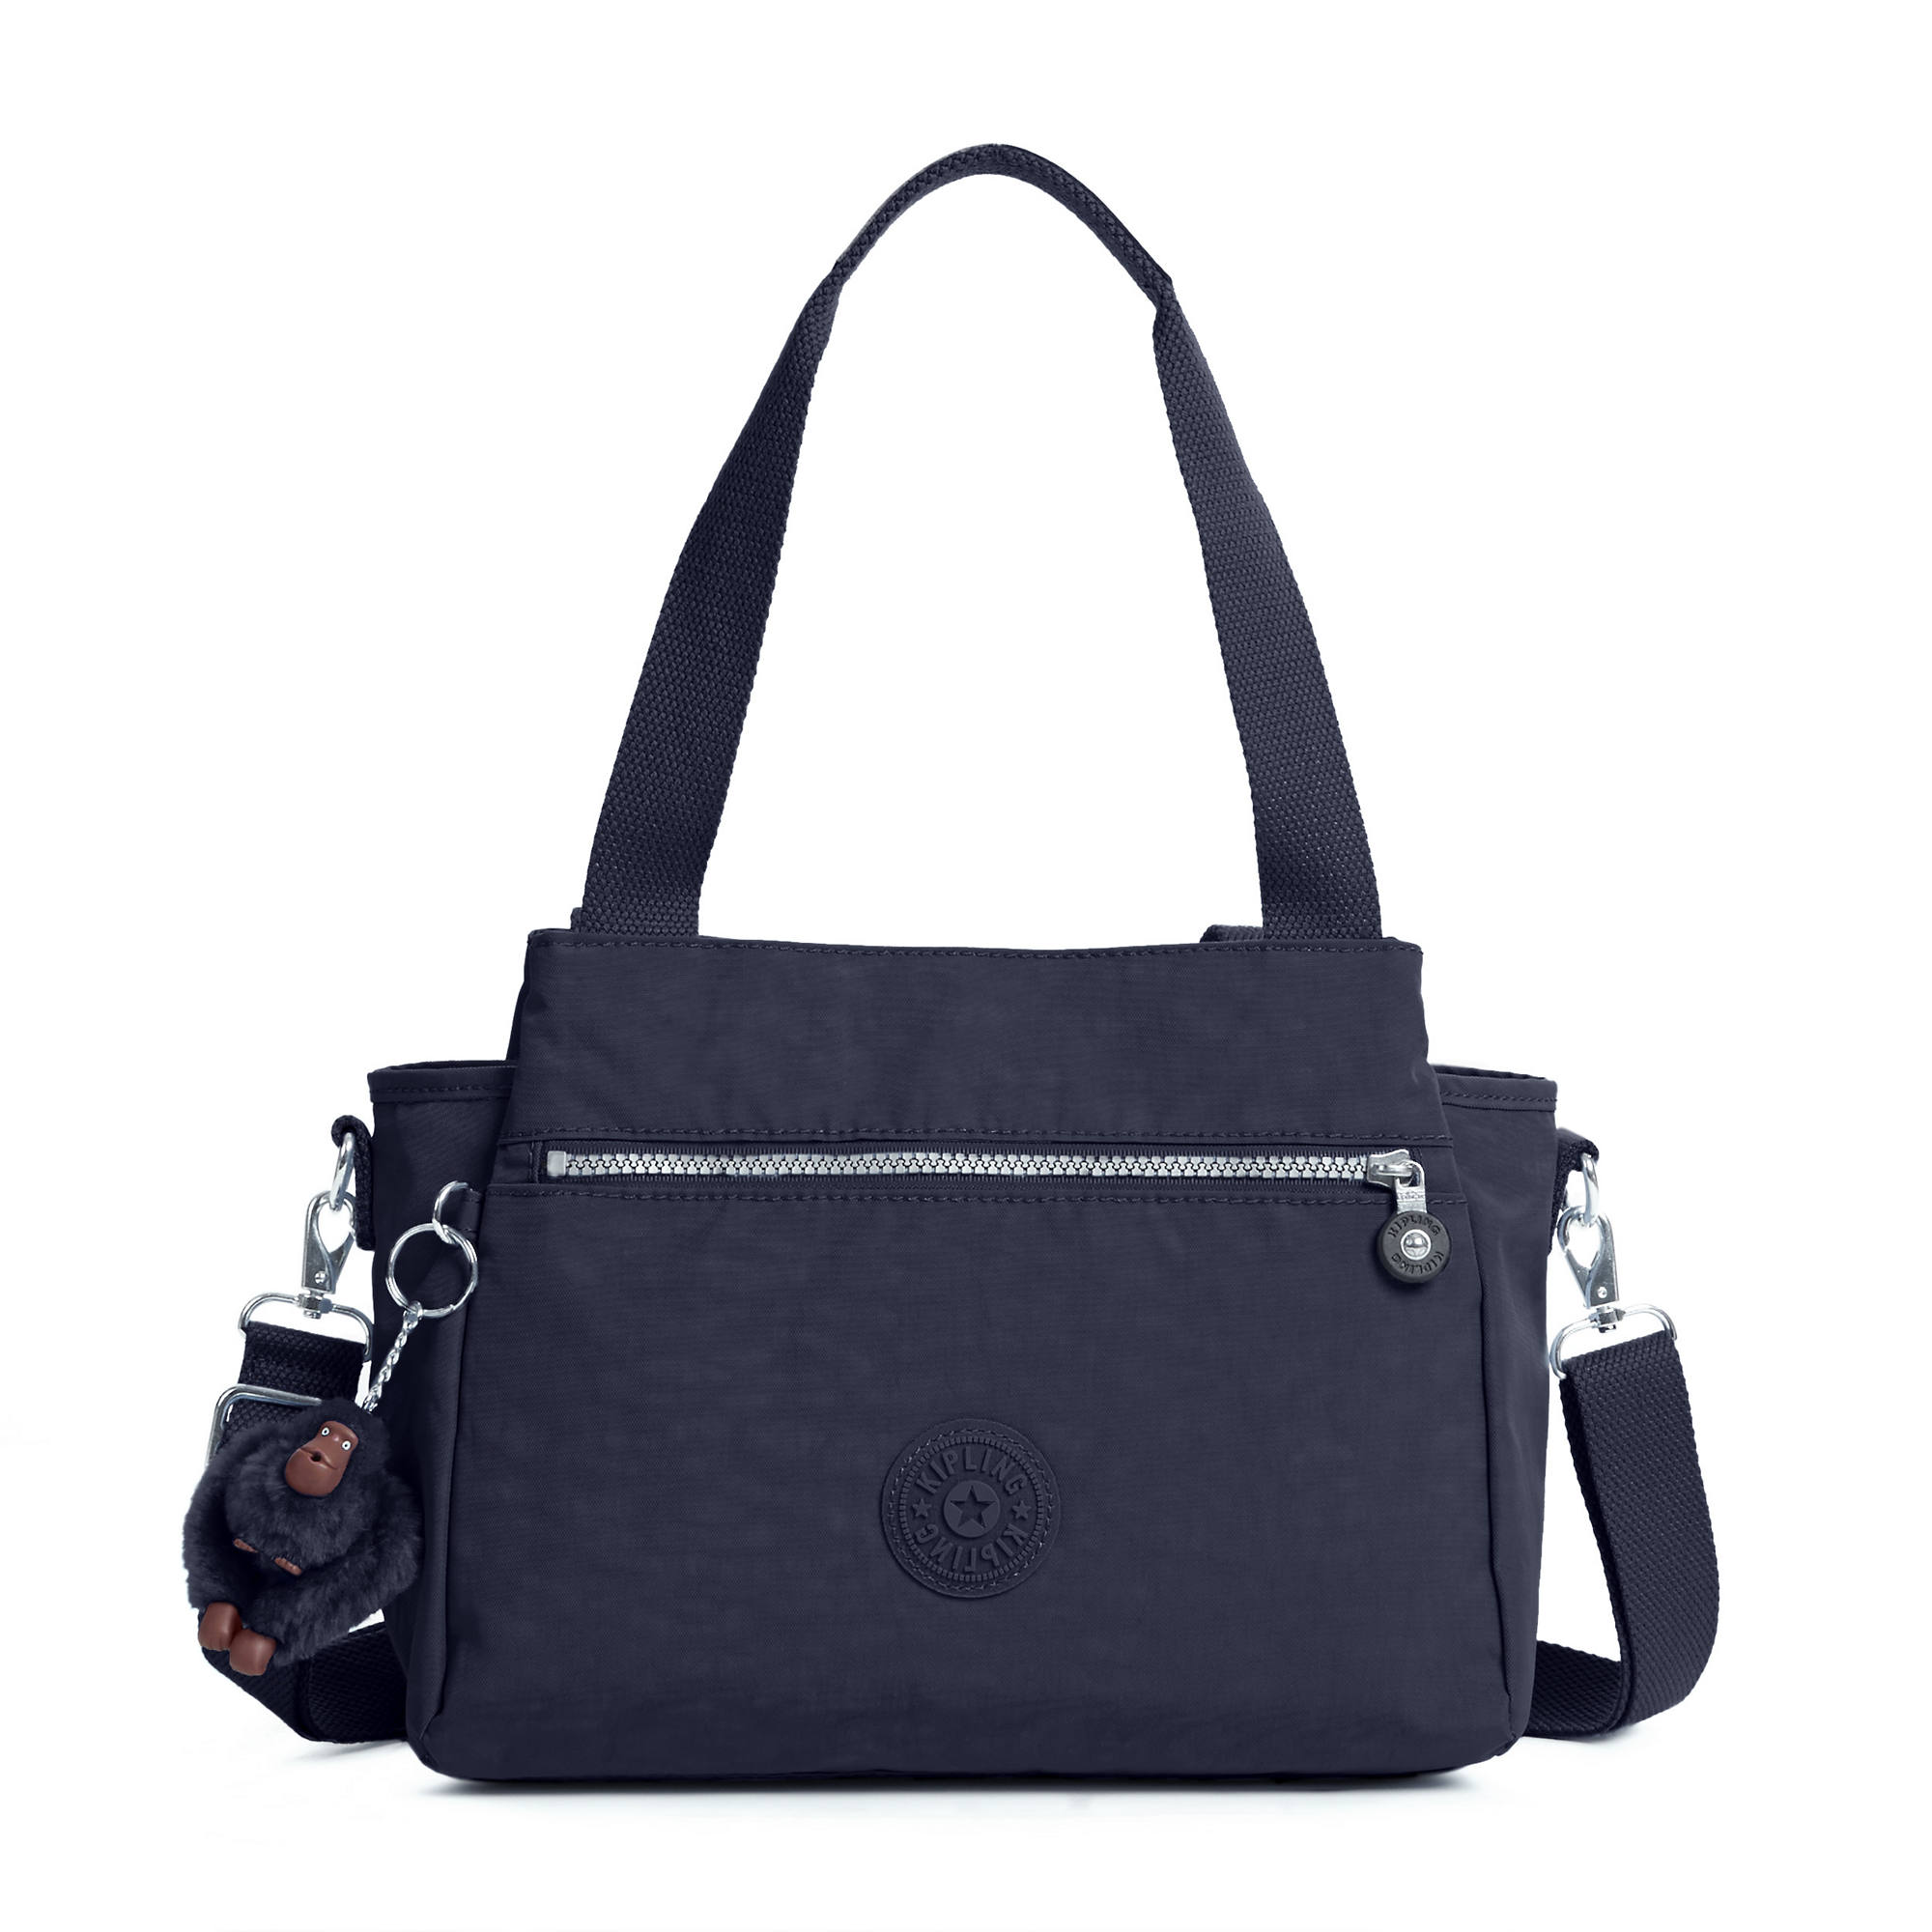 Discover the surprisingly simple way to buy Kipling on sale. Guaranteed authentic at incredible prices. Safe shipping and easy returns. Tradesy. Search. Kipling Large Satchel Tote Long Strap Crossbody Gray Yellow Nylon Weekend/Travel Bag. $ $.